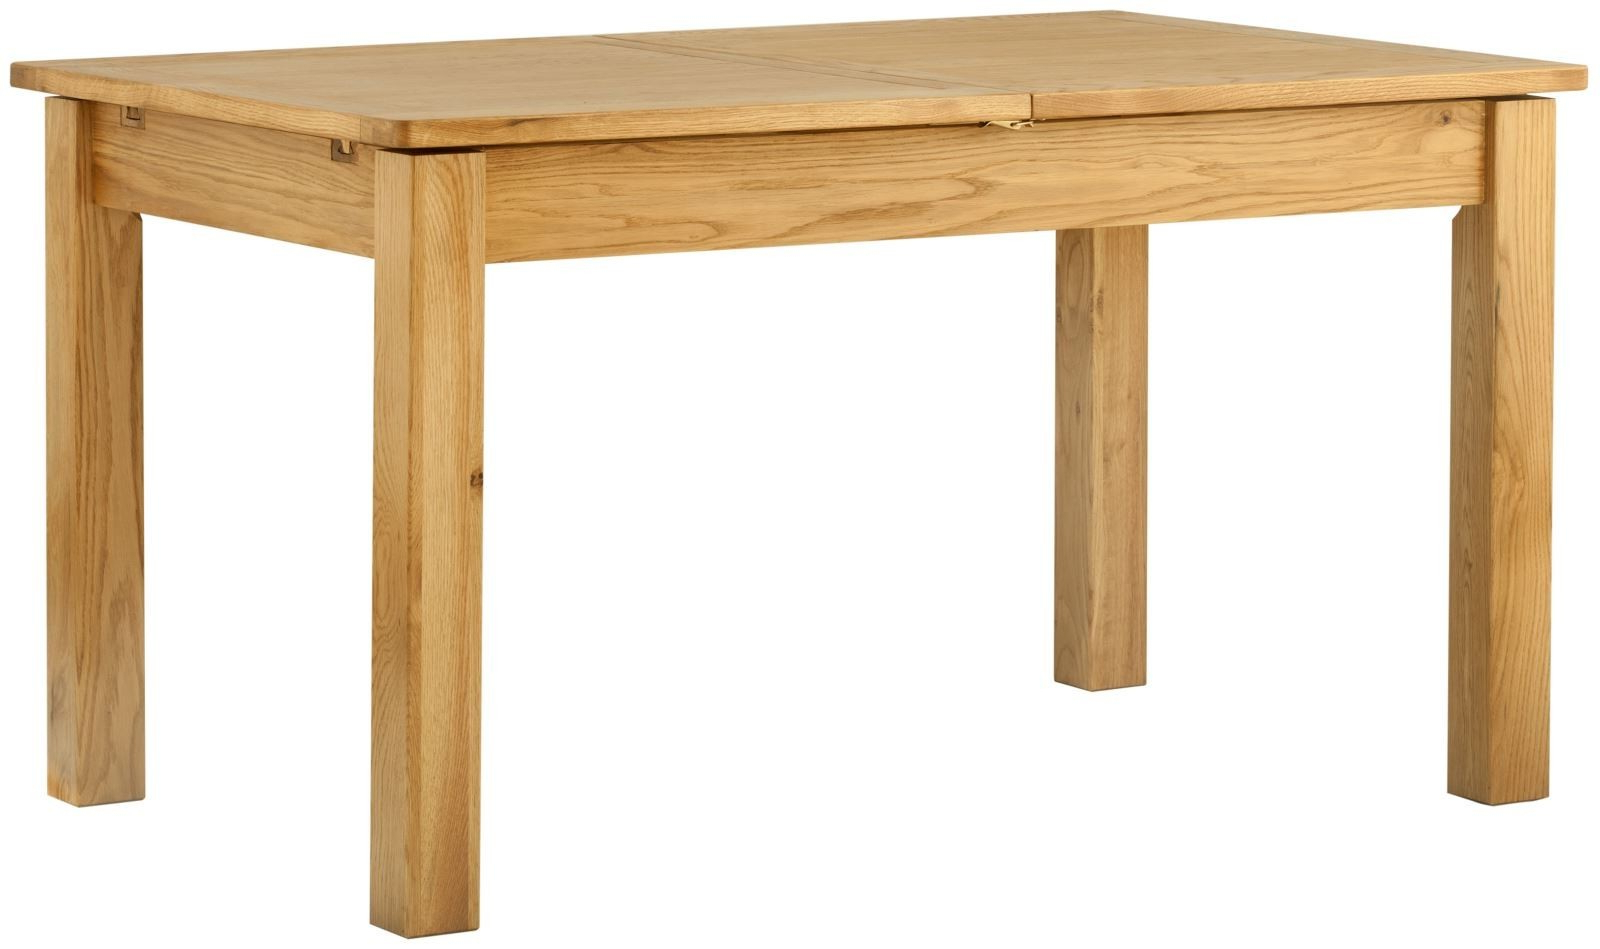 Dorset Extending Dining Table - Dining Tables - Reeds Homestore within Recent Reed Extending Dining Tables